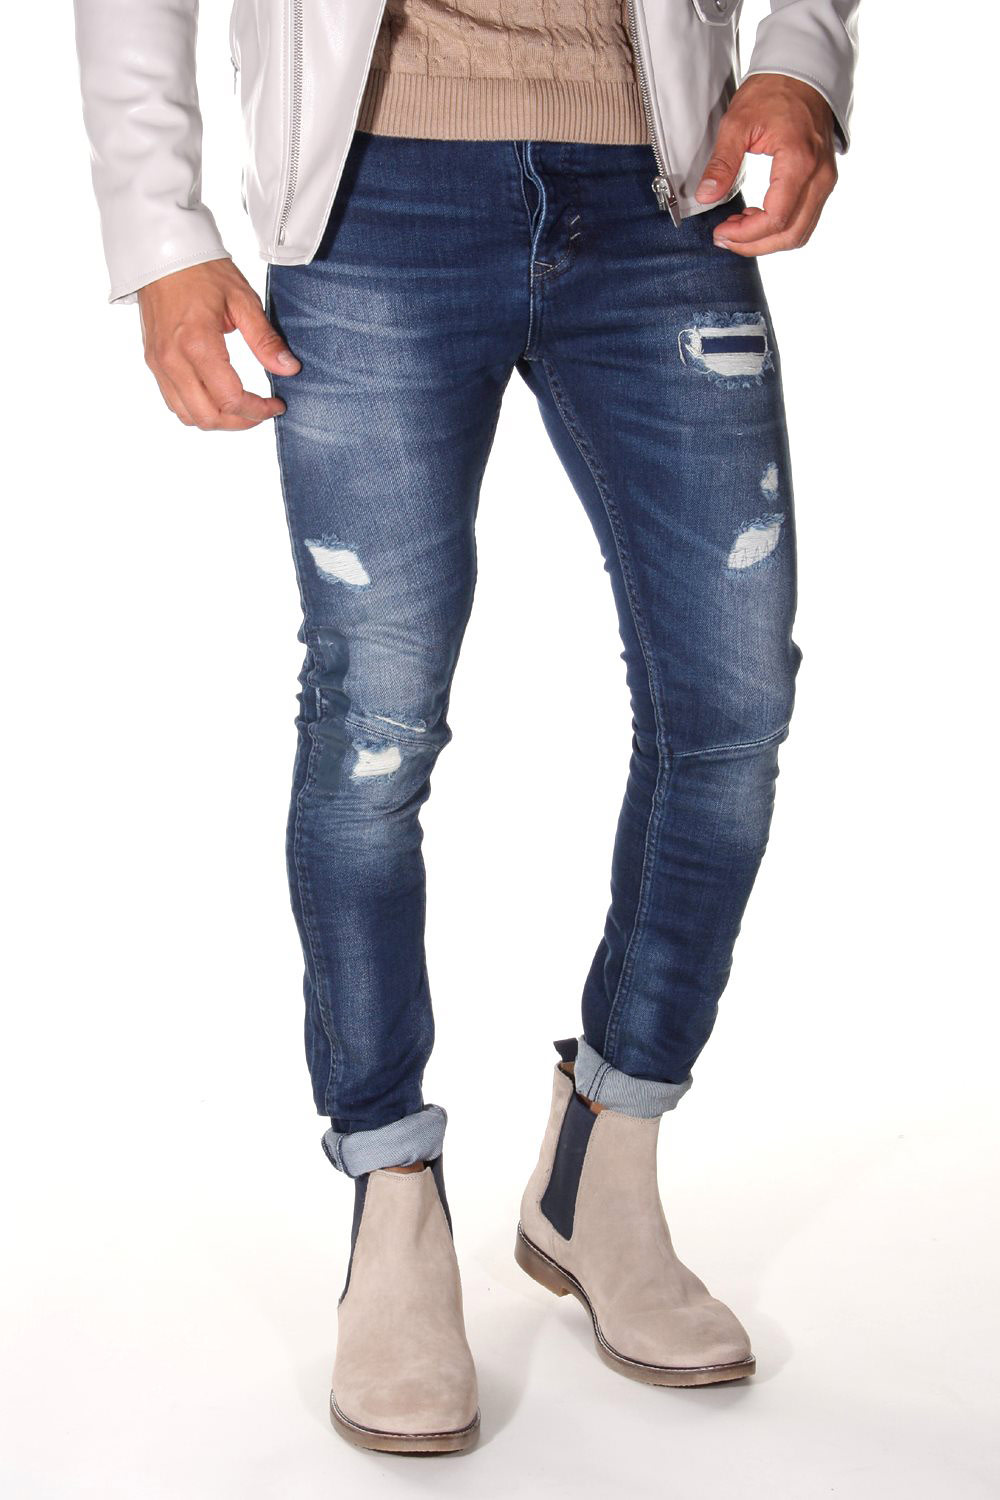 EX-PENT jeans at oboy.com